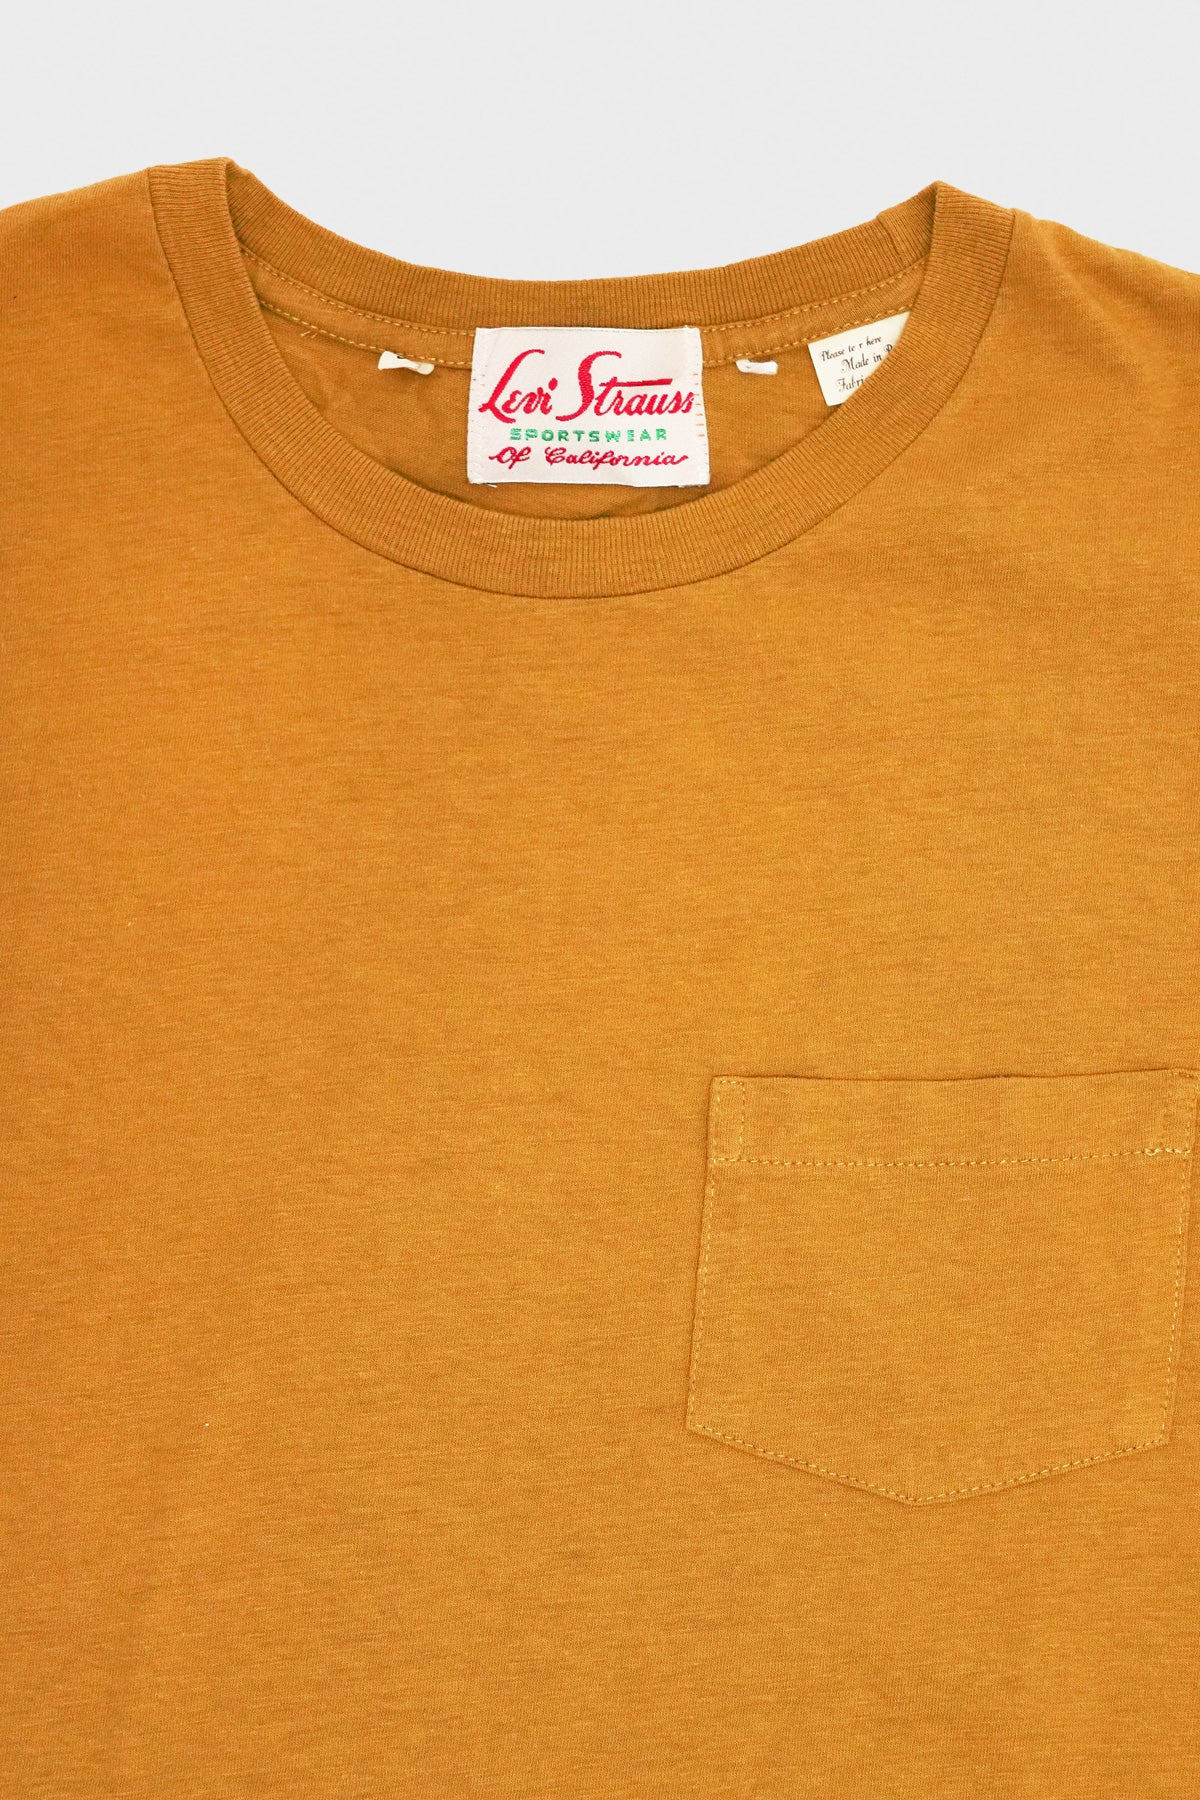 Levi's Vintage Clothing - 1950s Sportswear Tee - Wood Thrush - Canoe Club